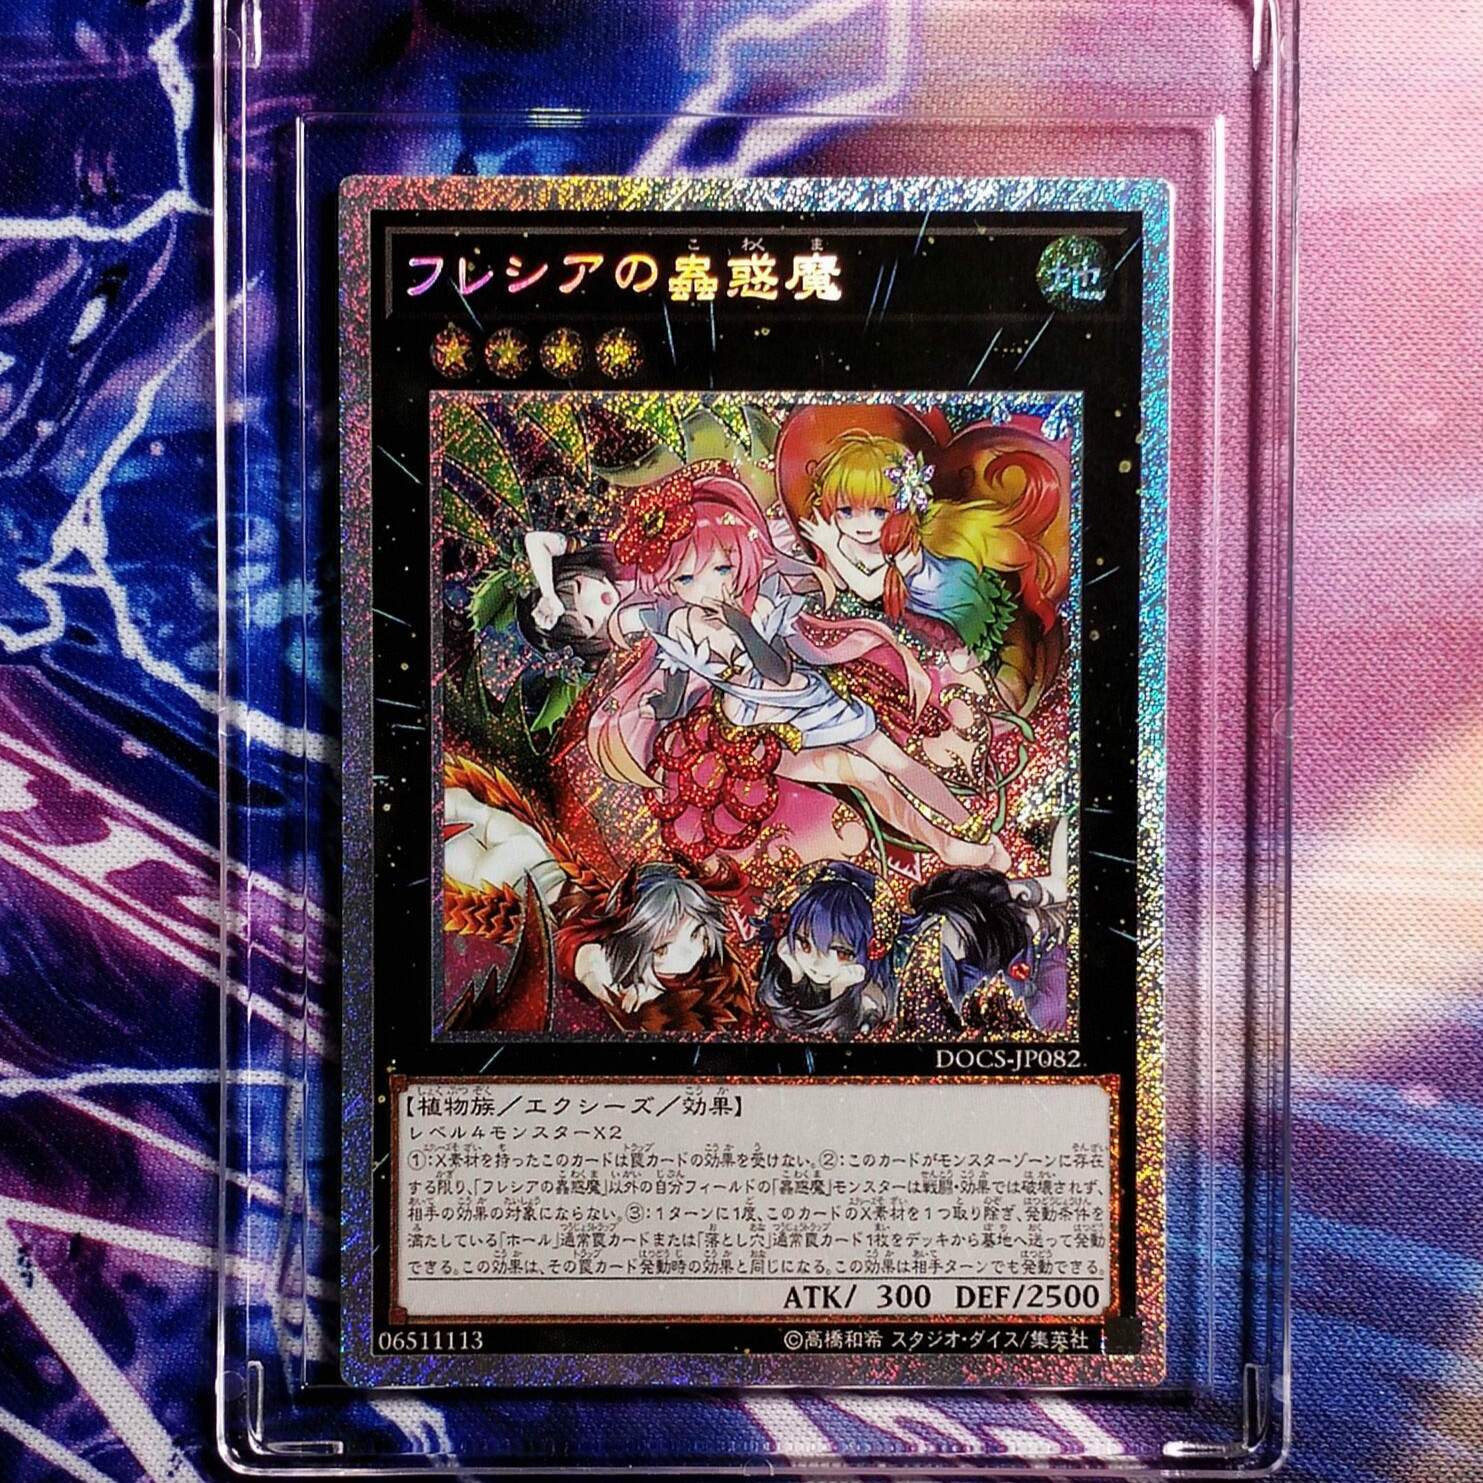 Yu Gi Oh Rain Flash Traptrix Rafflesia DIY Colorful Toys Hobbies Hobby Collectibles Game Collection Anime Cards